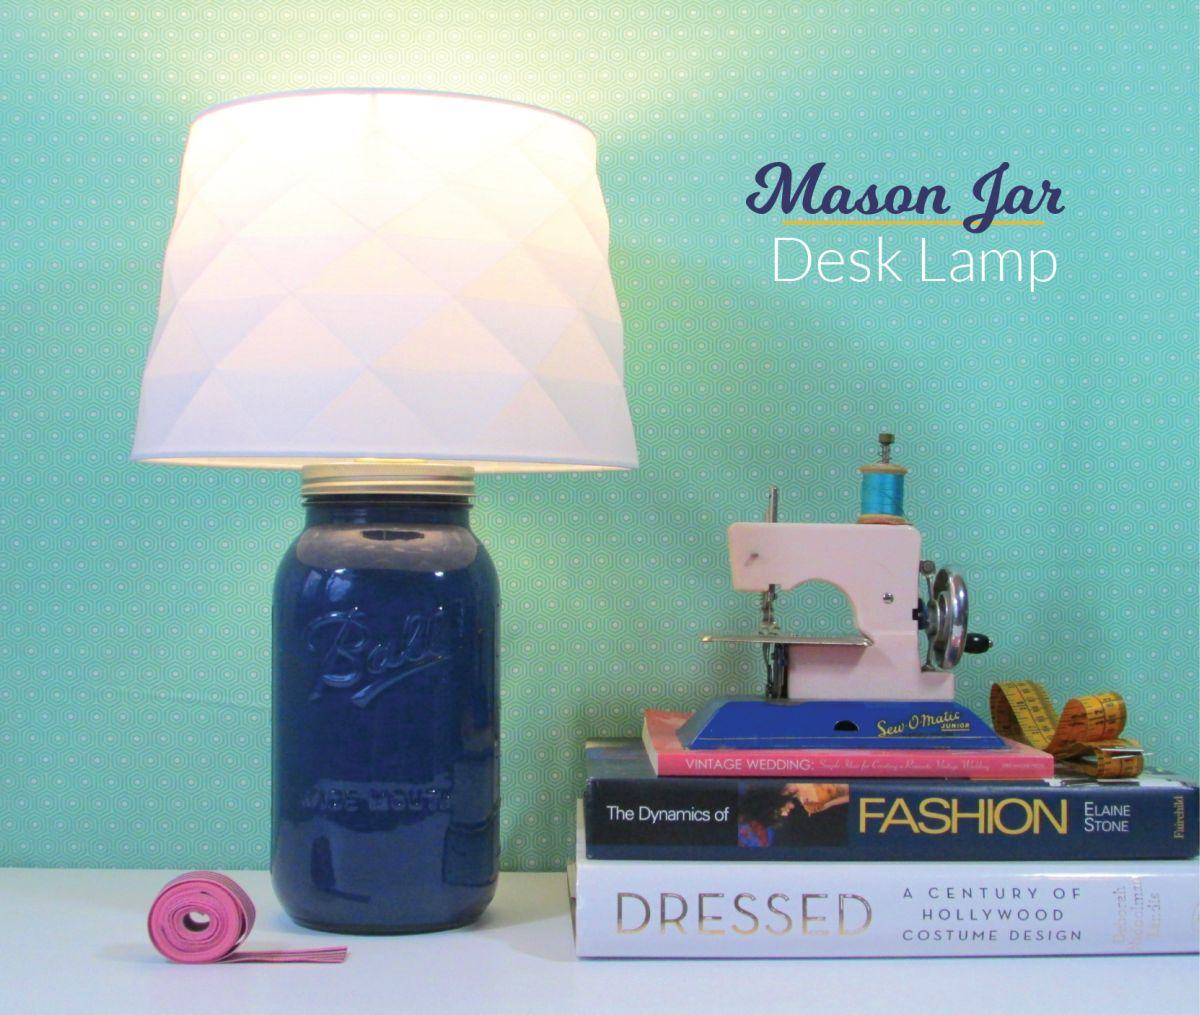 Mason jar lamp turned into a lamp